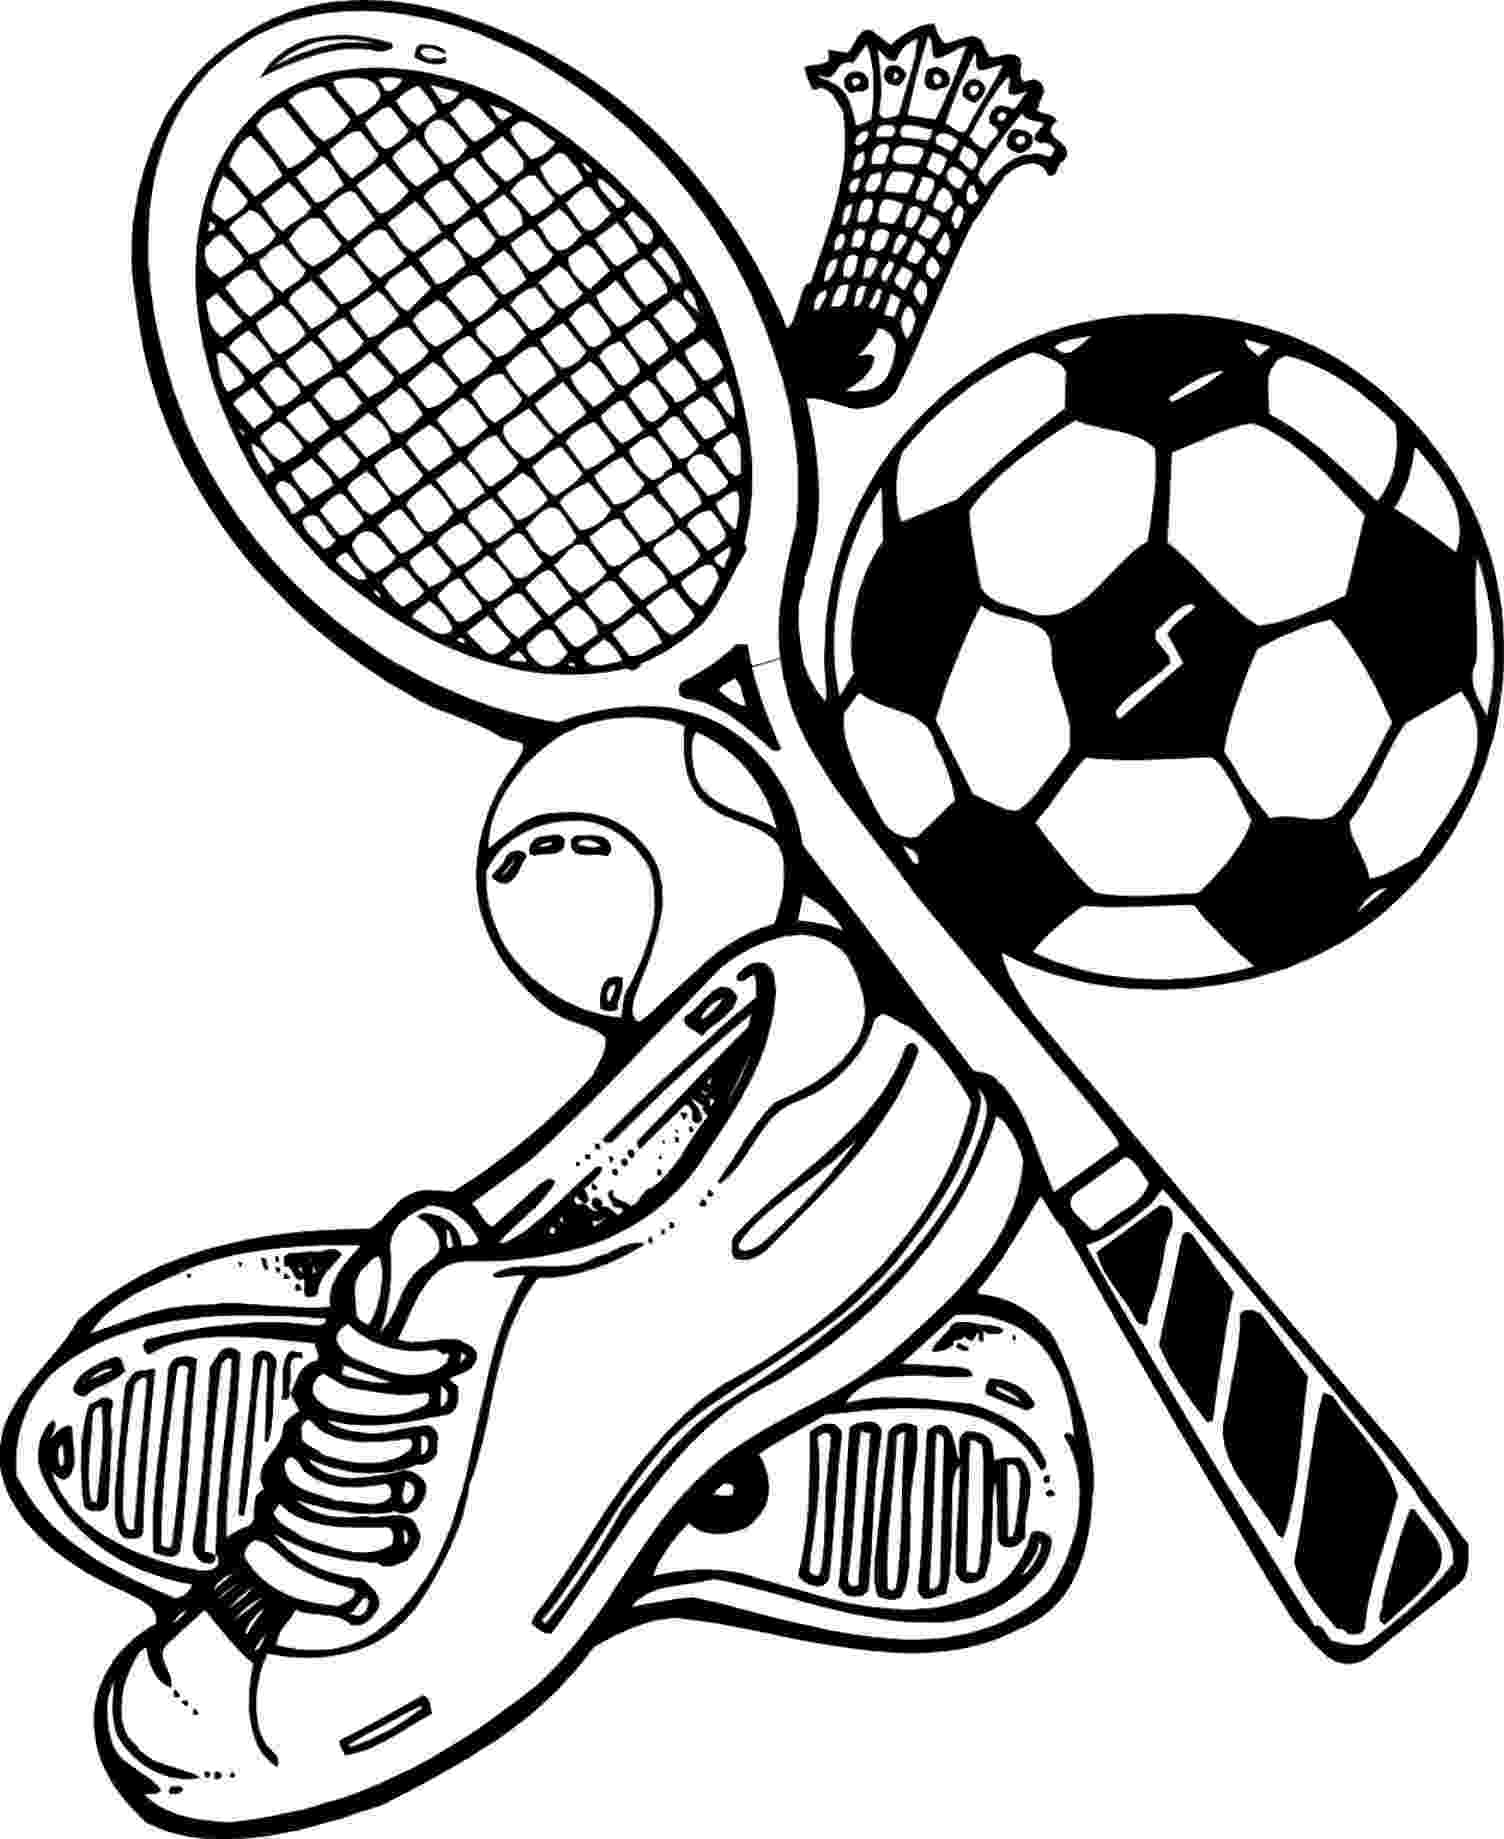 kids sports coloring pages tennis coloring pages for childrens printable for free kids coloring sports pages